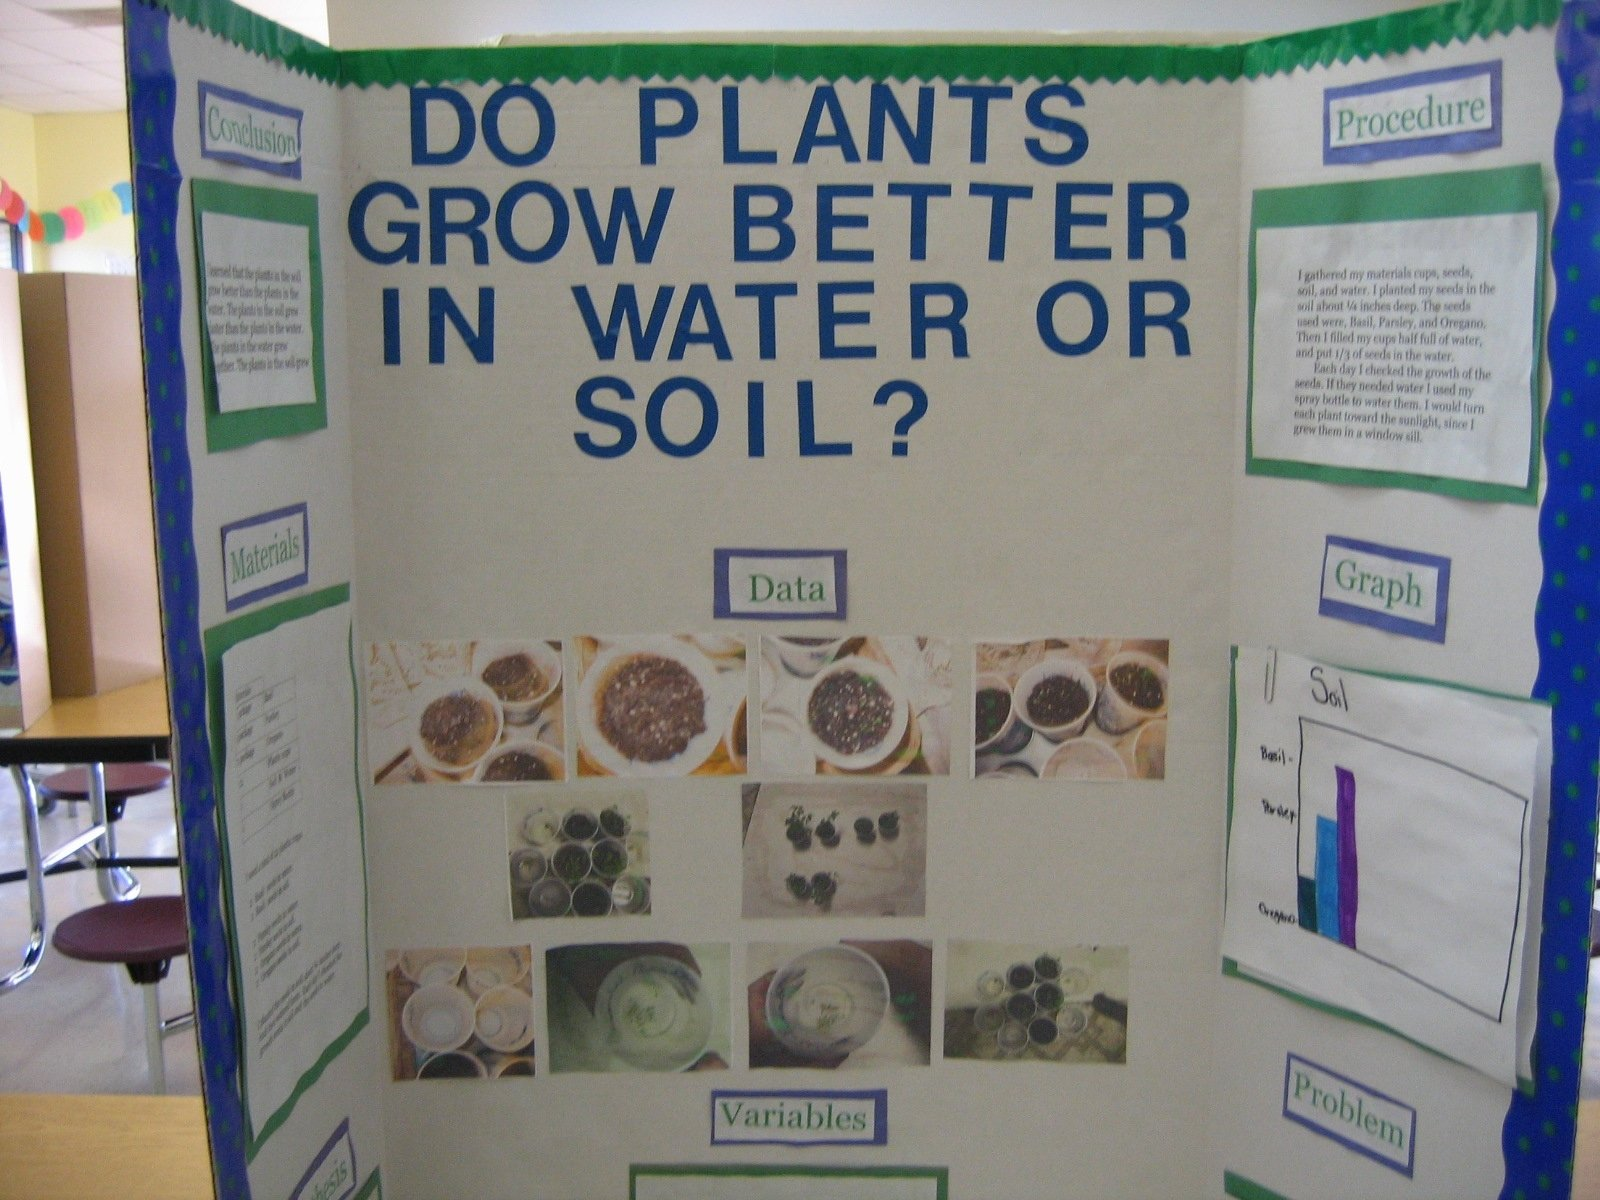 10 Fantastic Plant Science Fair Project Ideas do plants grow better in water or soil 2020